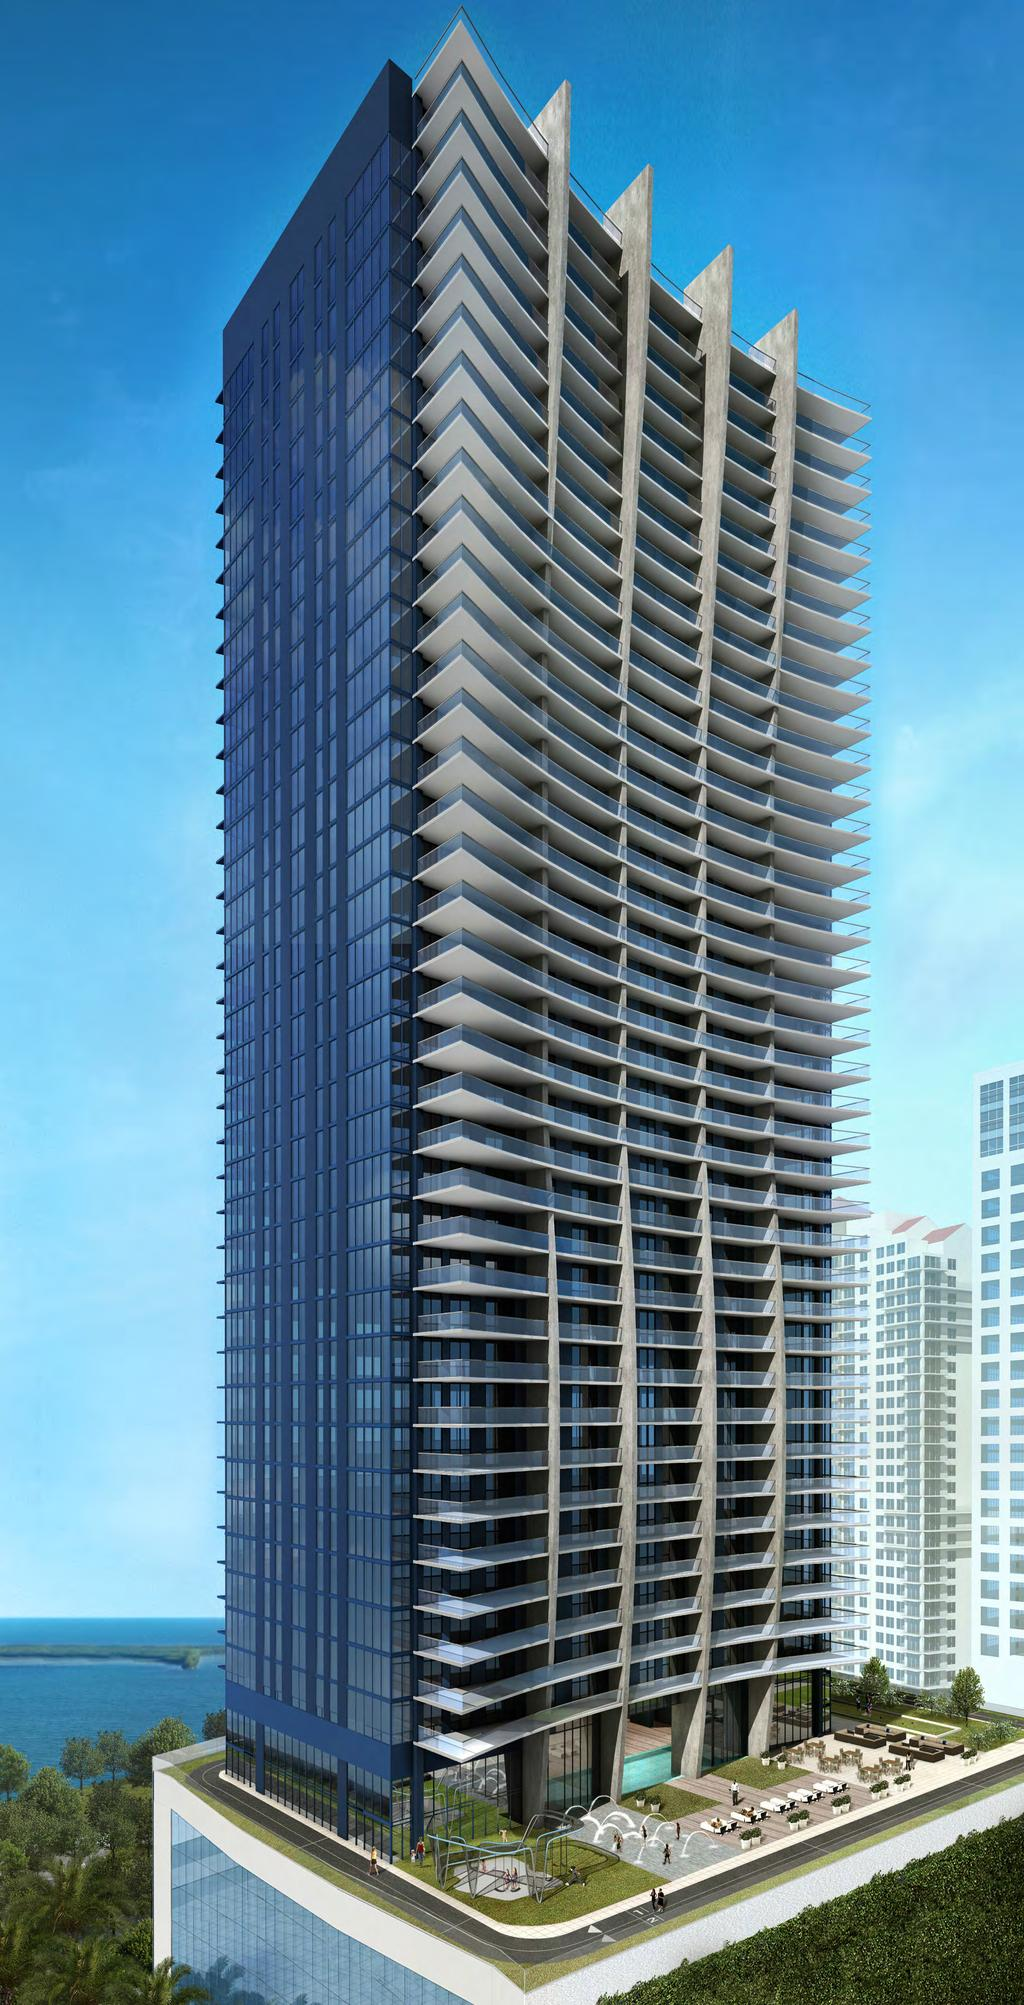 THE PERFECT 10 An iconic 50-story-tower with reflective glass facade and curvilinear profile designed by world-renowned The Sieger Suarez